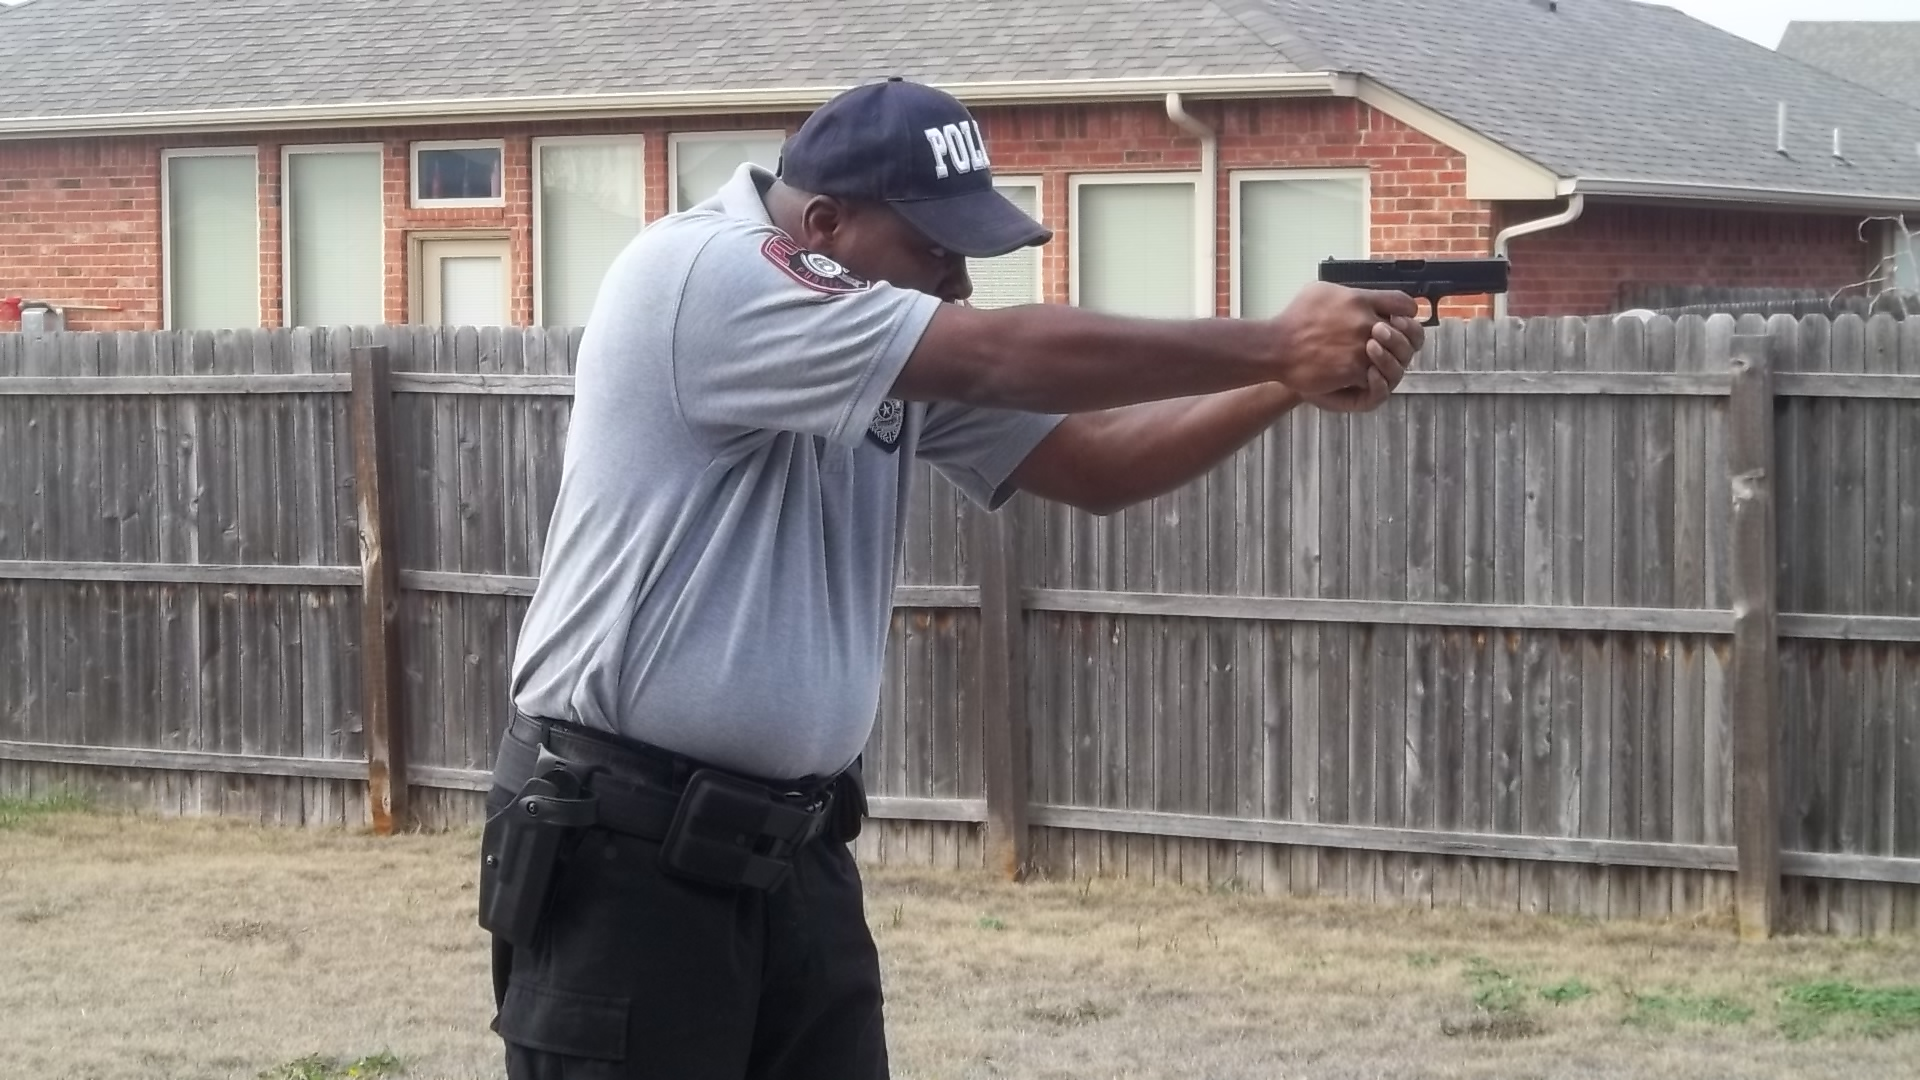 Recent oklahoma active shooter course prepares first responders